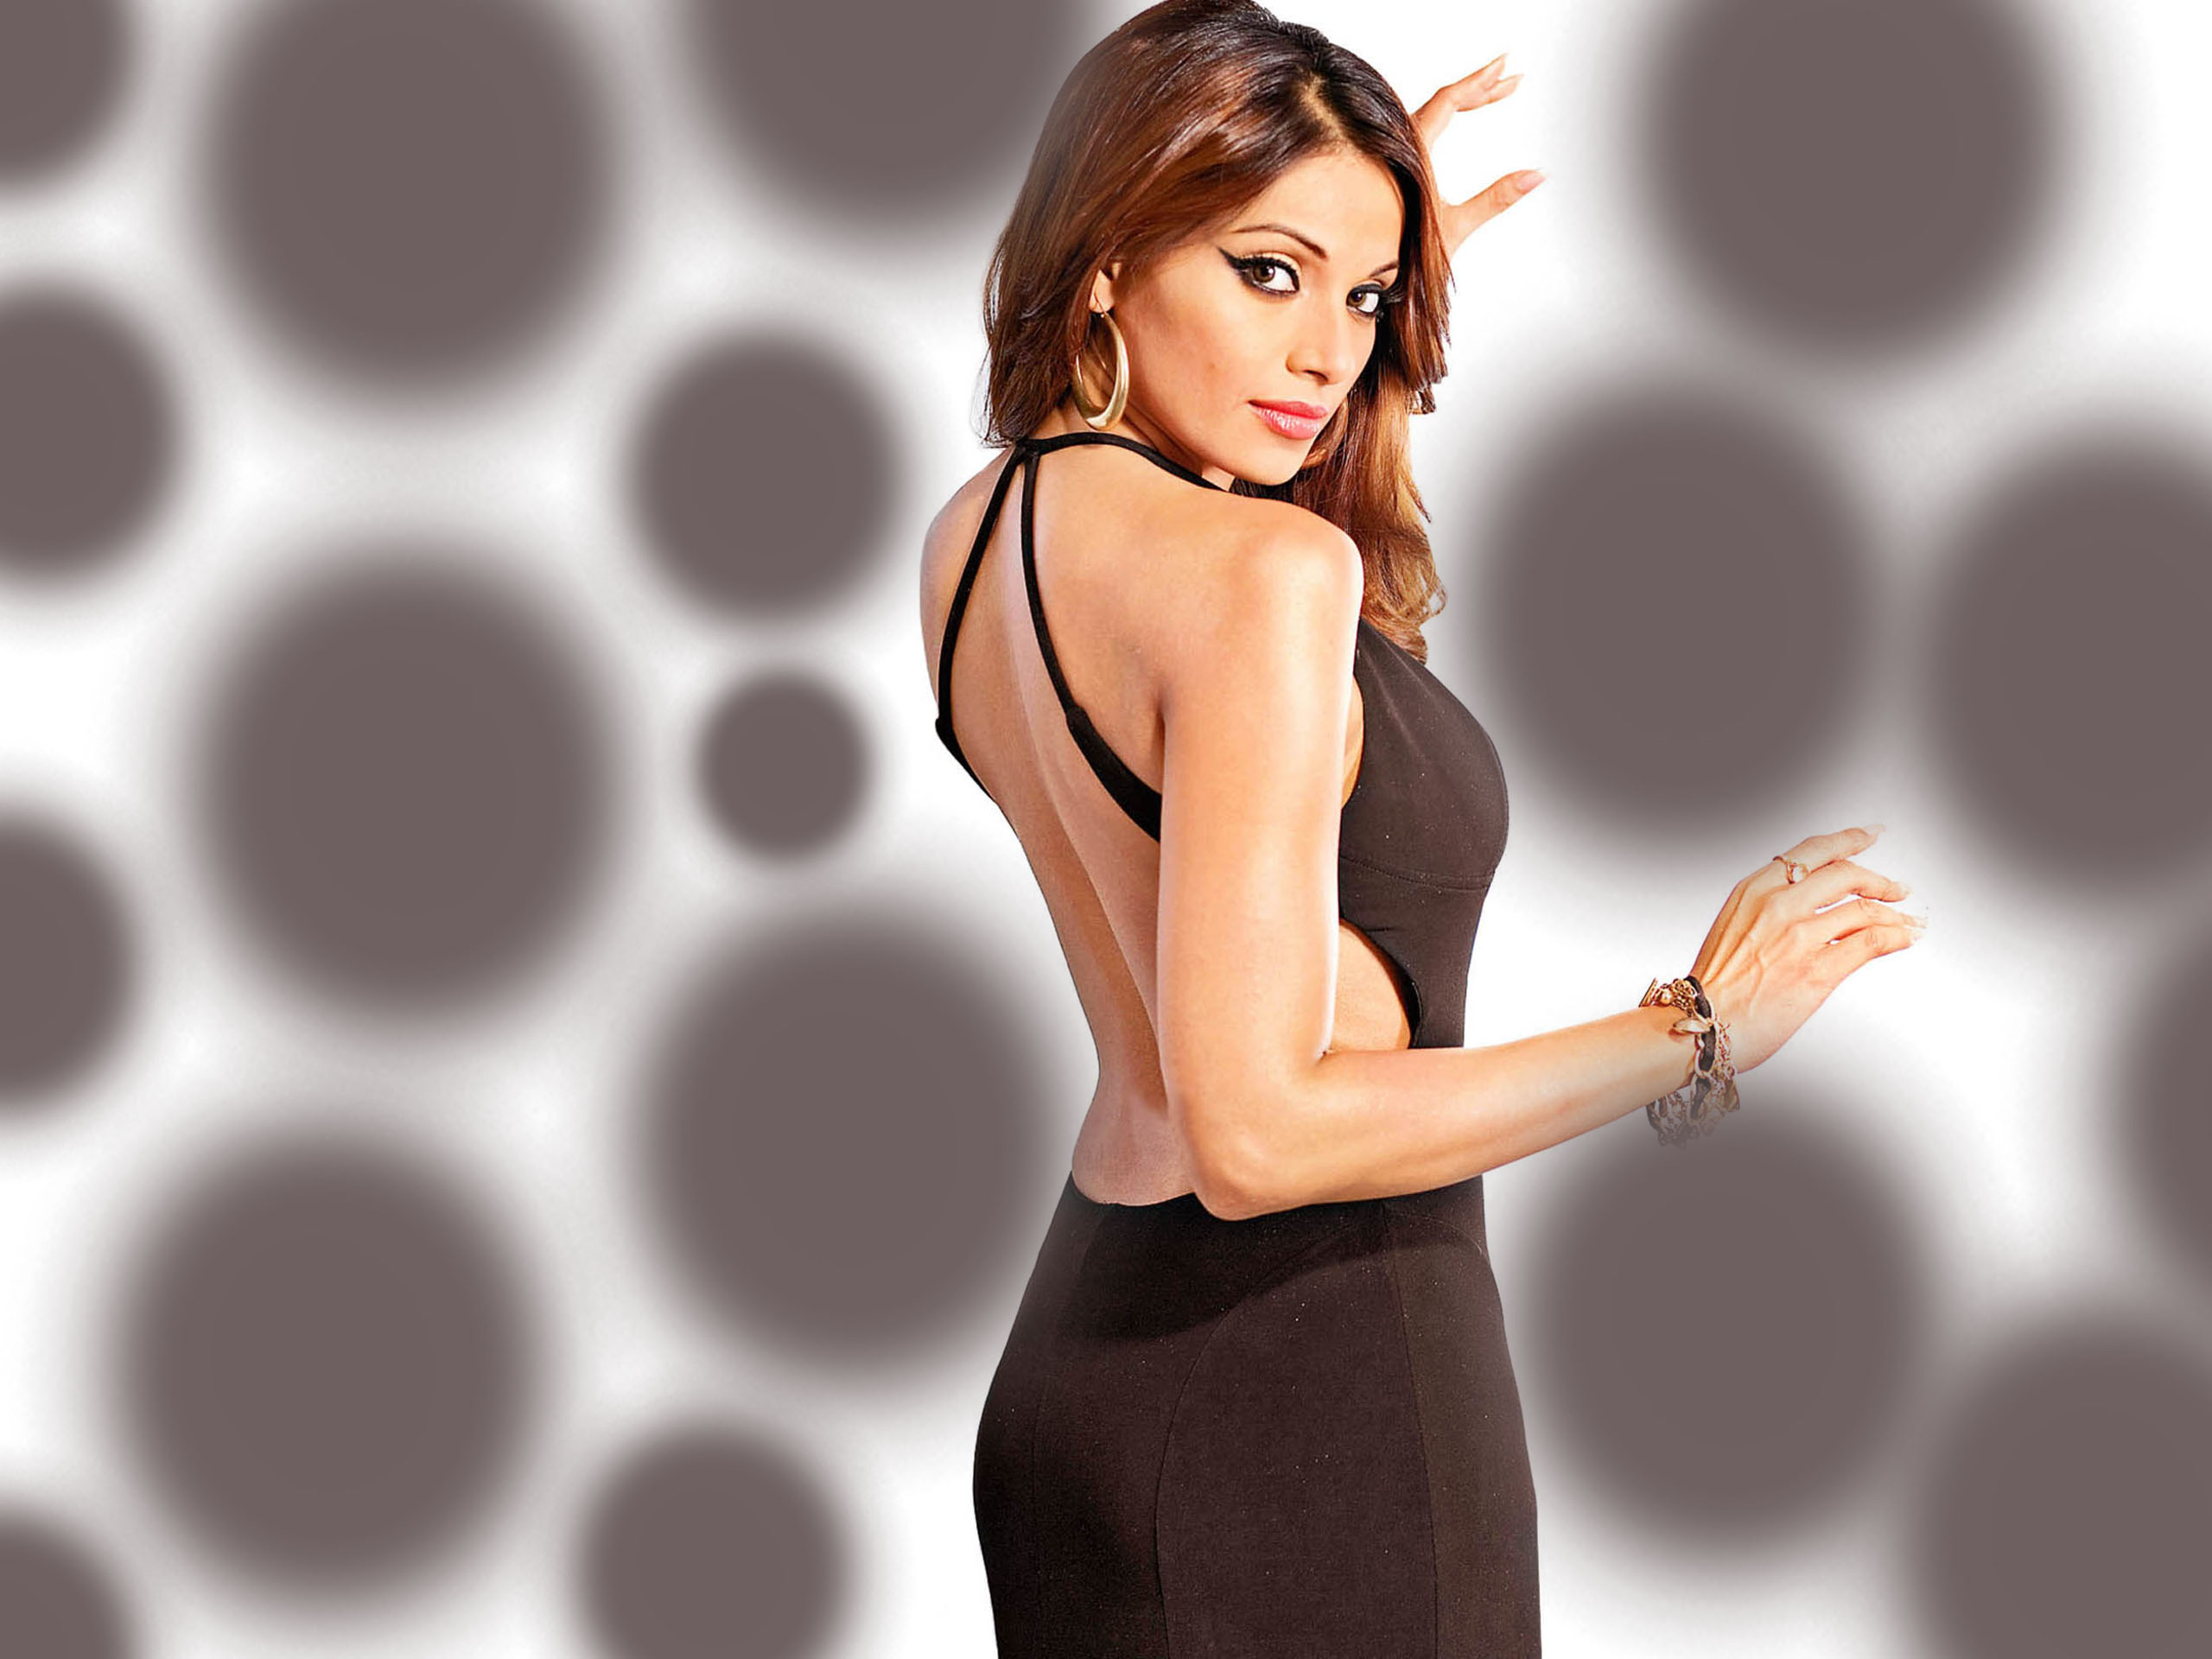 lovely bipasha basu look background download free photos hd